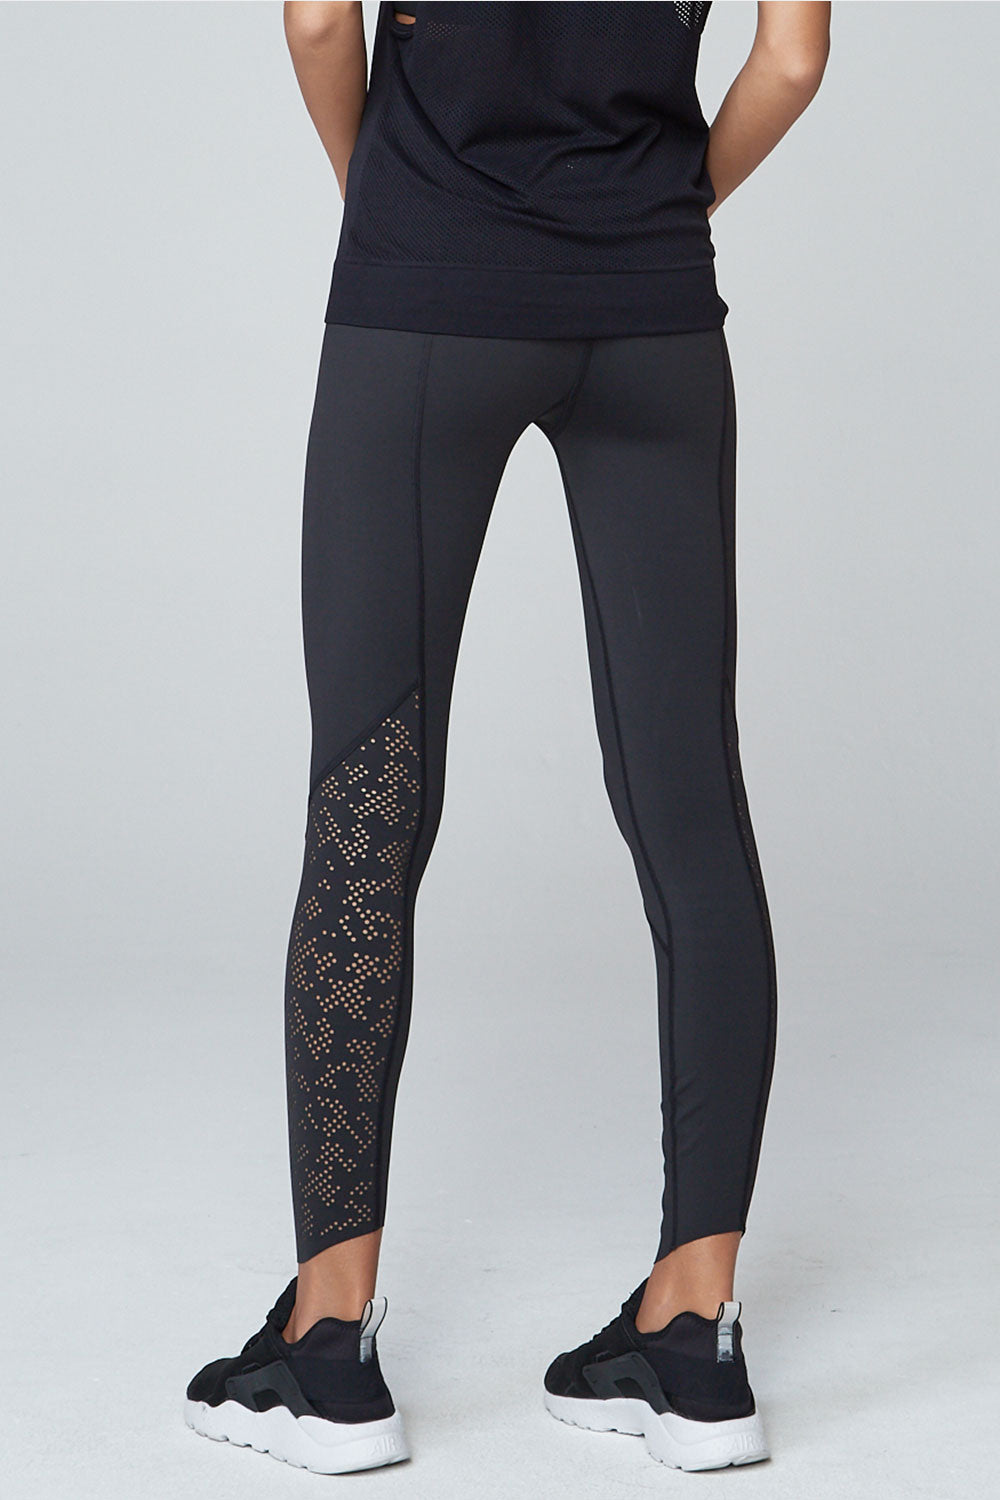 Varley Doran Tight - Black - Sculptique